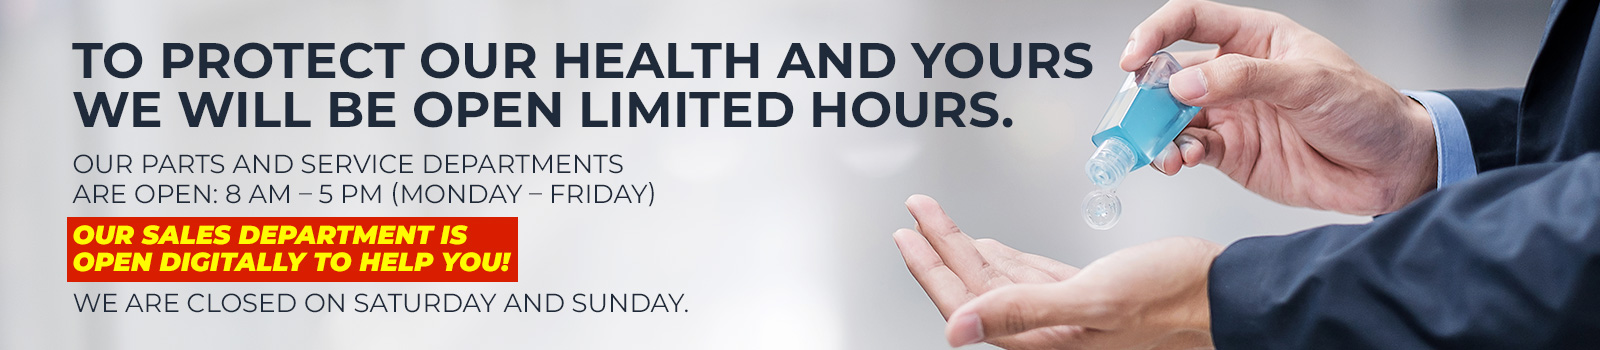 Limited Hours